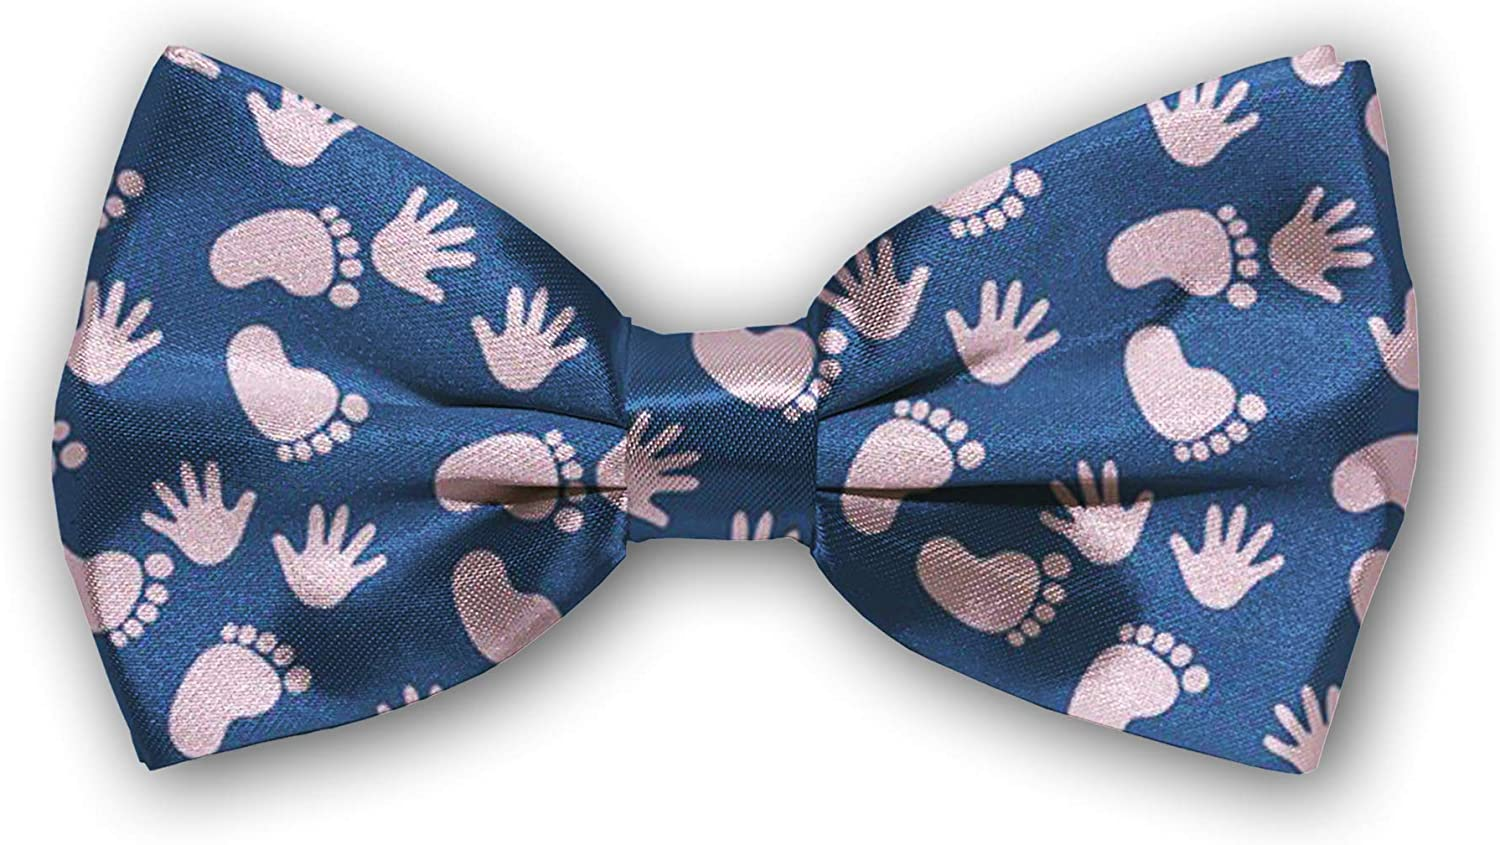 Bow Tie Tuxedo Selling Minneapolis Mall rankings Butterfly Cotton Mens Adjustable for Bowtie Boys